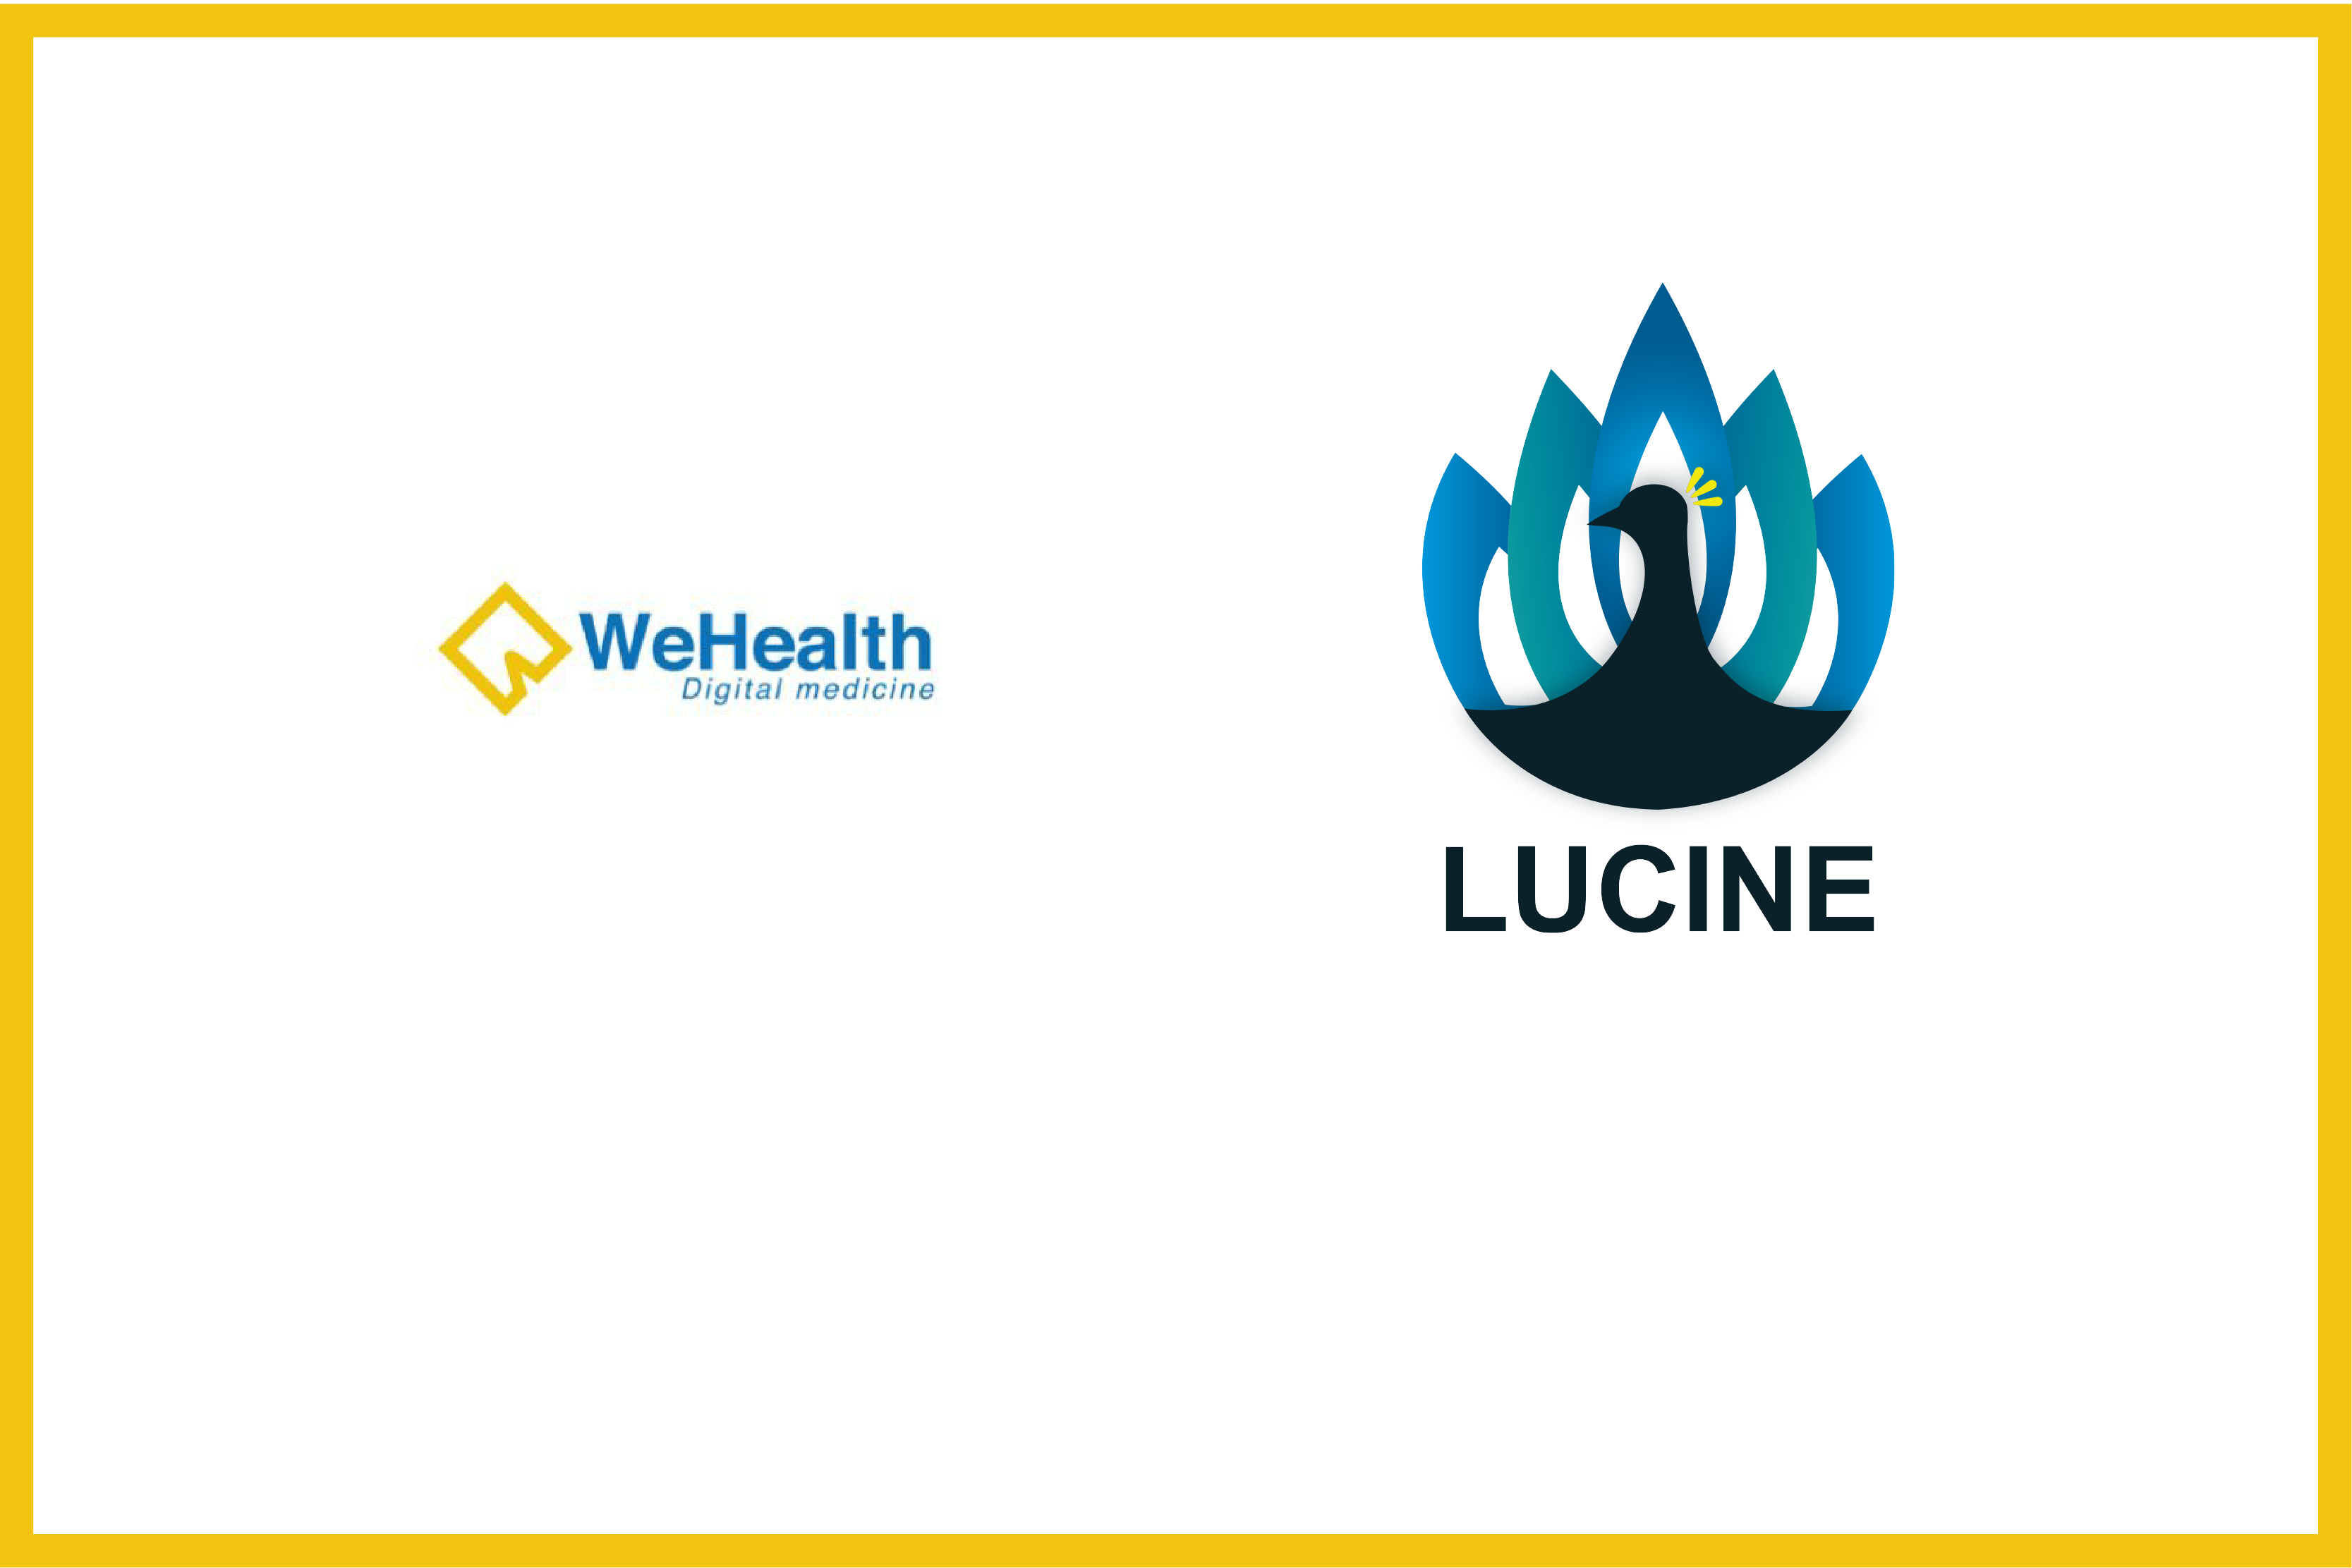 WeHealth Digital Medicine and French start-up Lucine sign